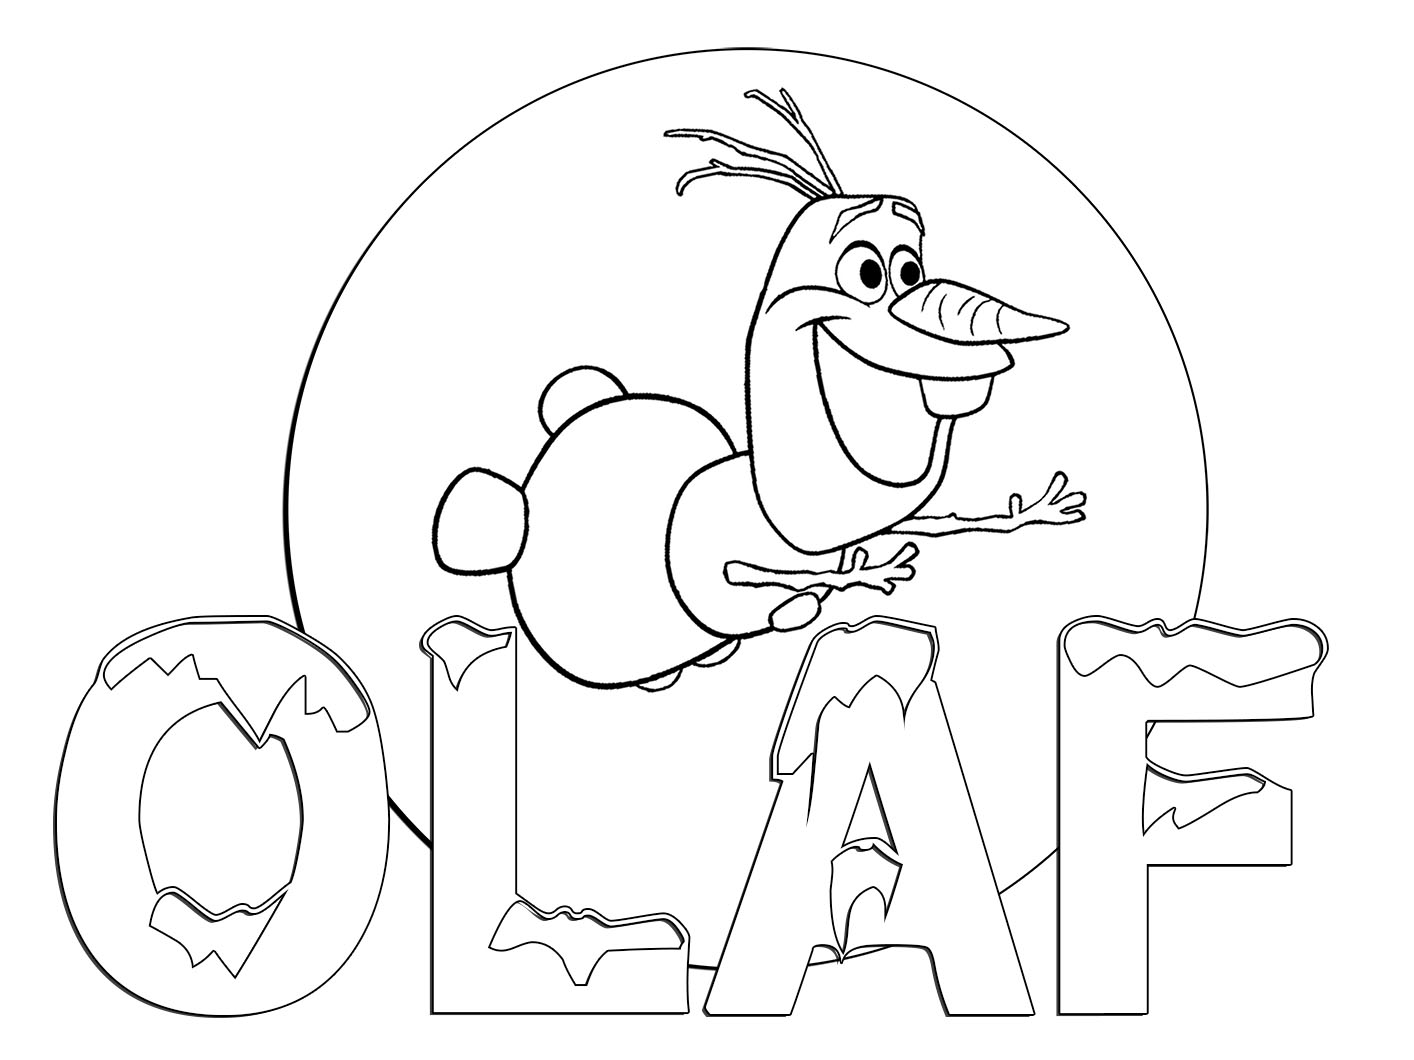 coloring pages that you can print out - frozen coloring sheets to print out only coloring pages